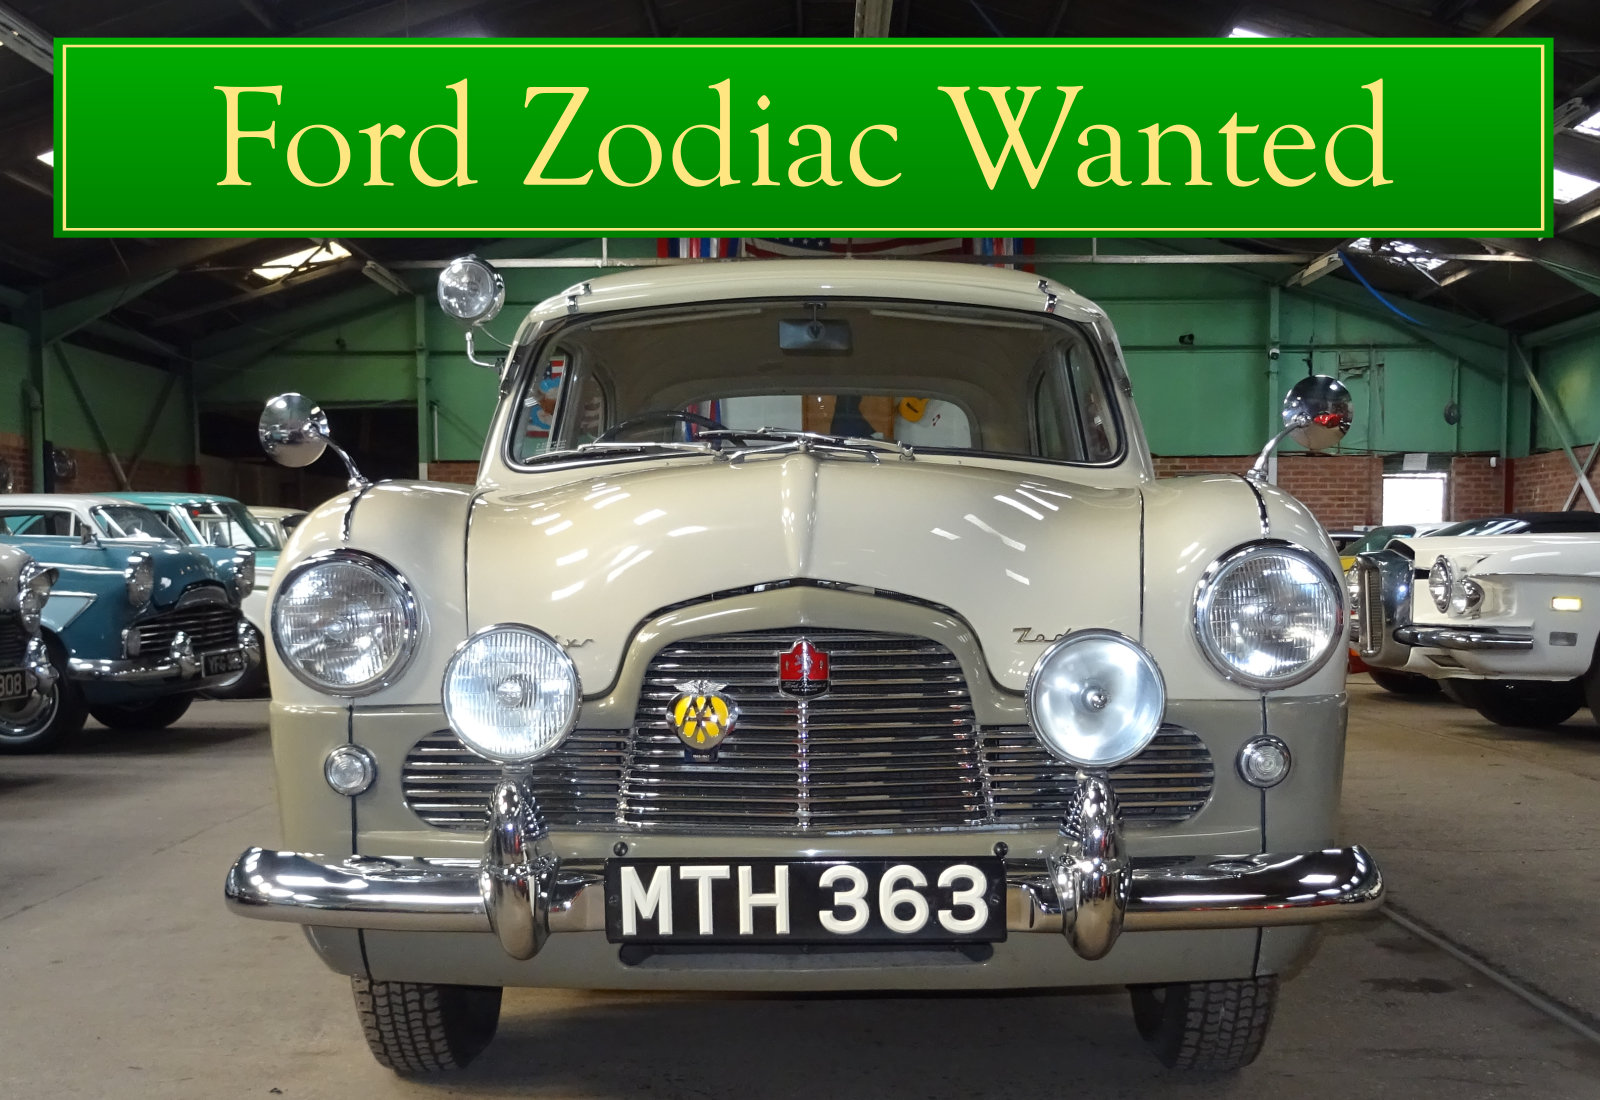 FORD ZODIAC MK3 WANTED, CLASSIC CARS WANTED, INSTANT PAYMENT Wanted (picture 3 of 6)